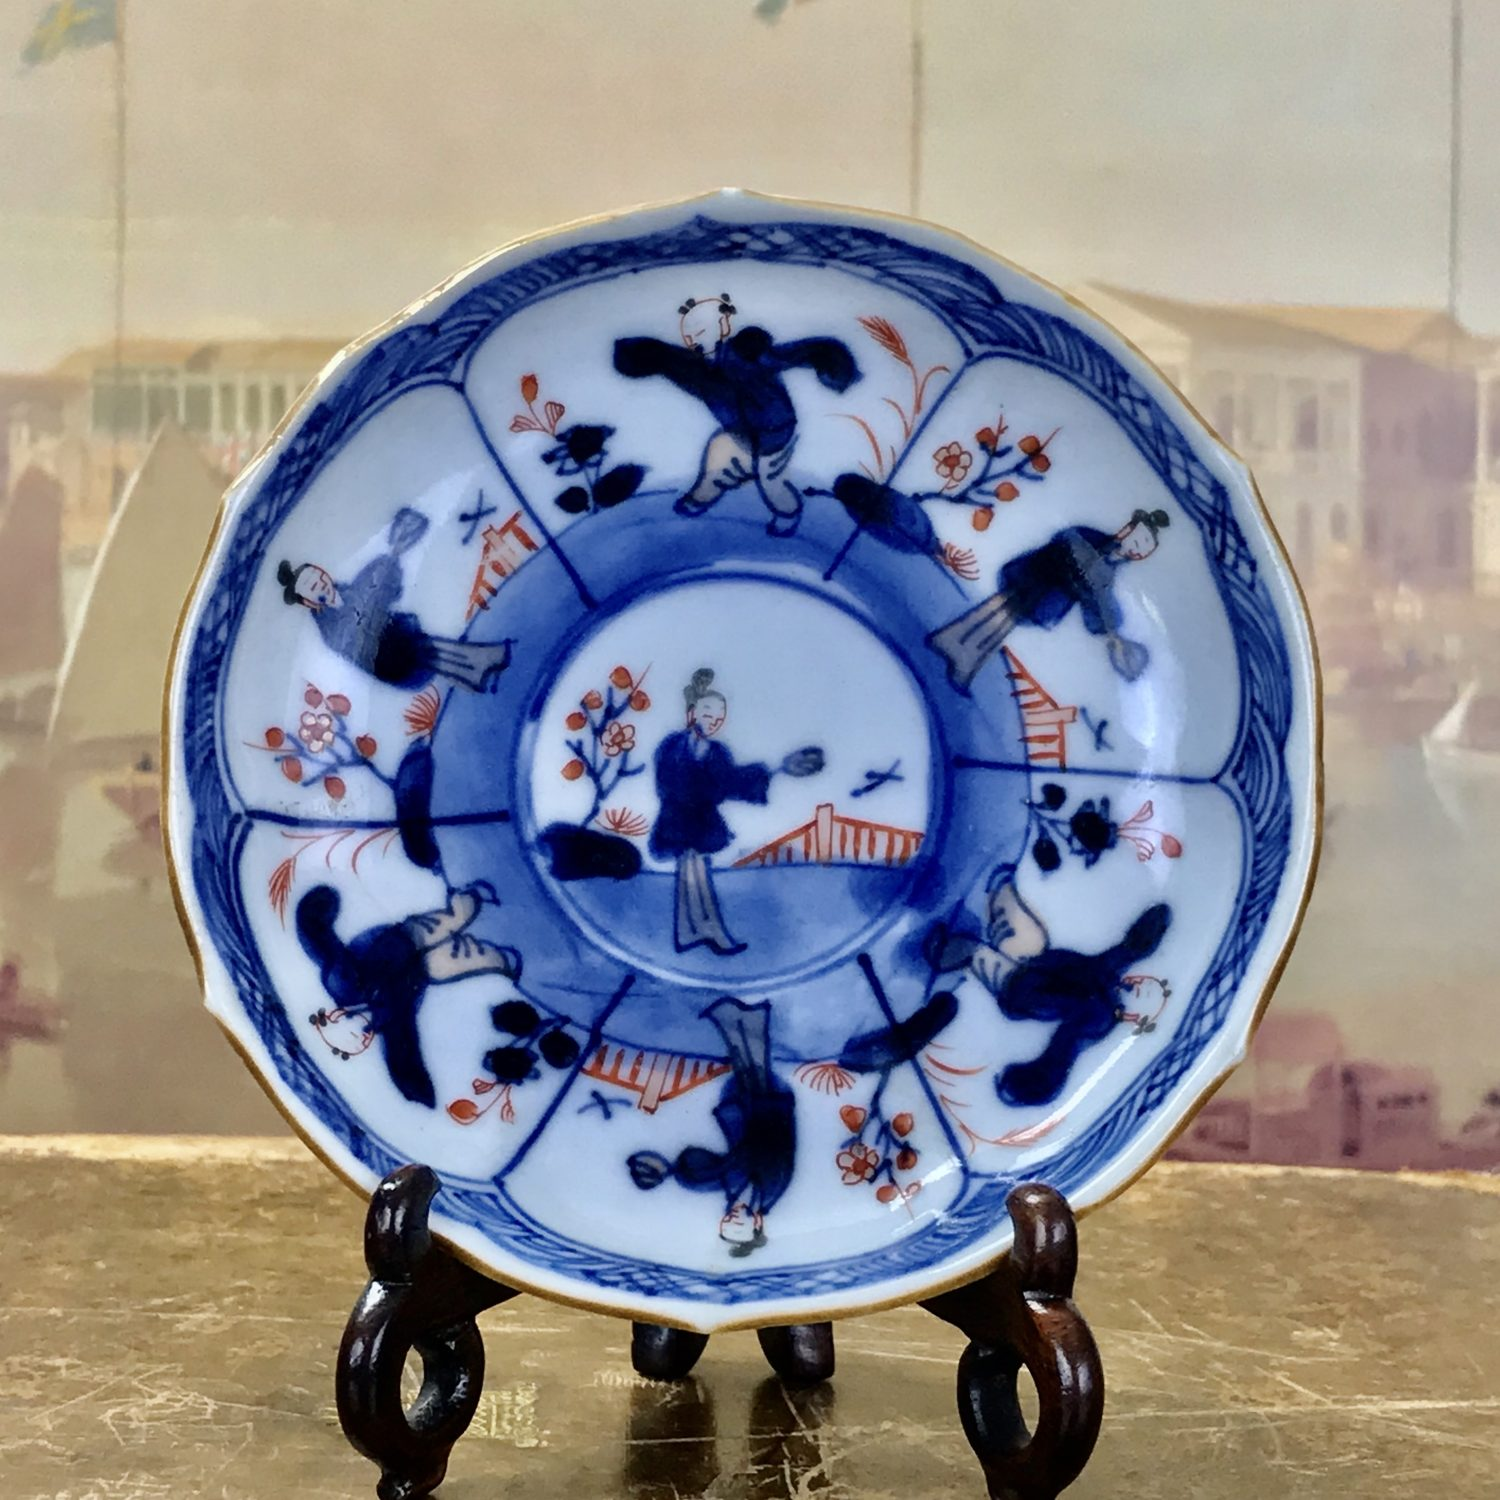 Chinese Export Porcelain Saucer, c1750.